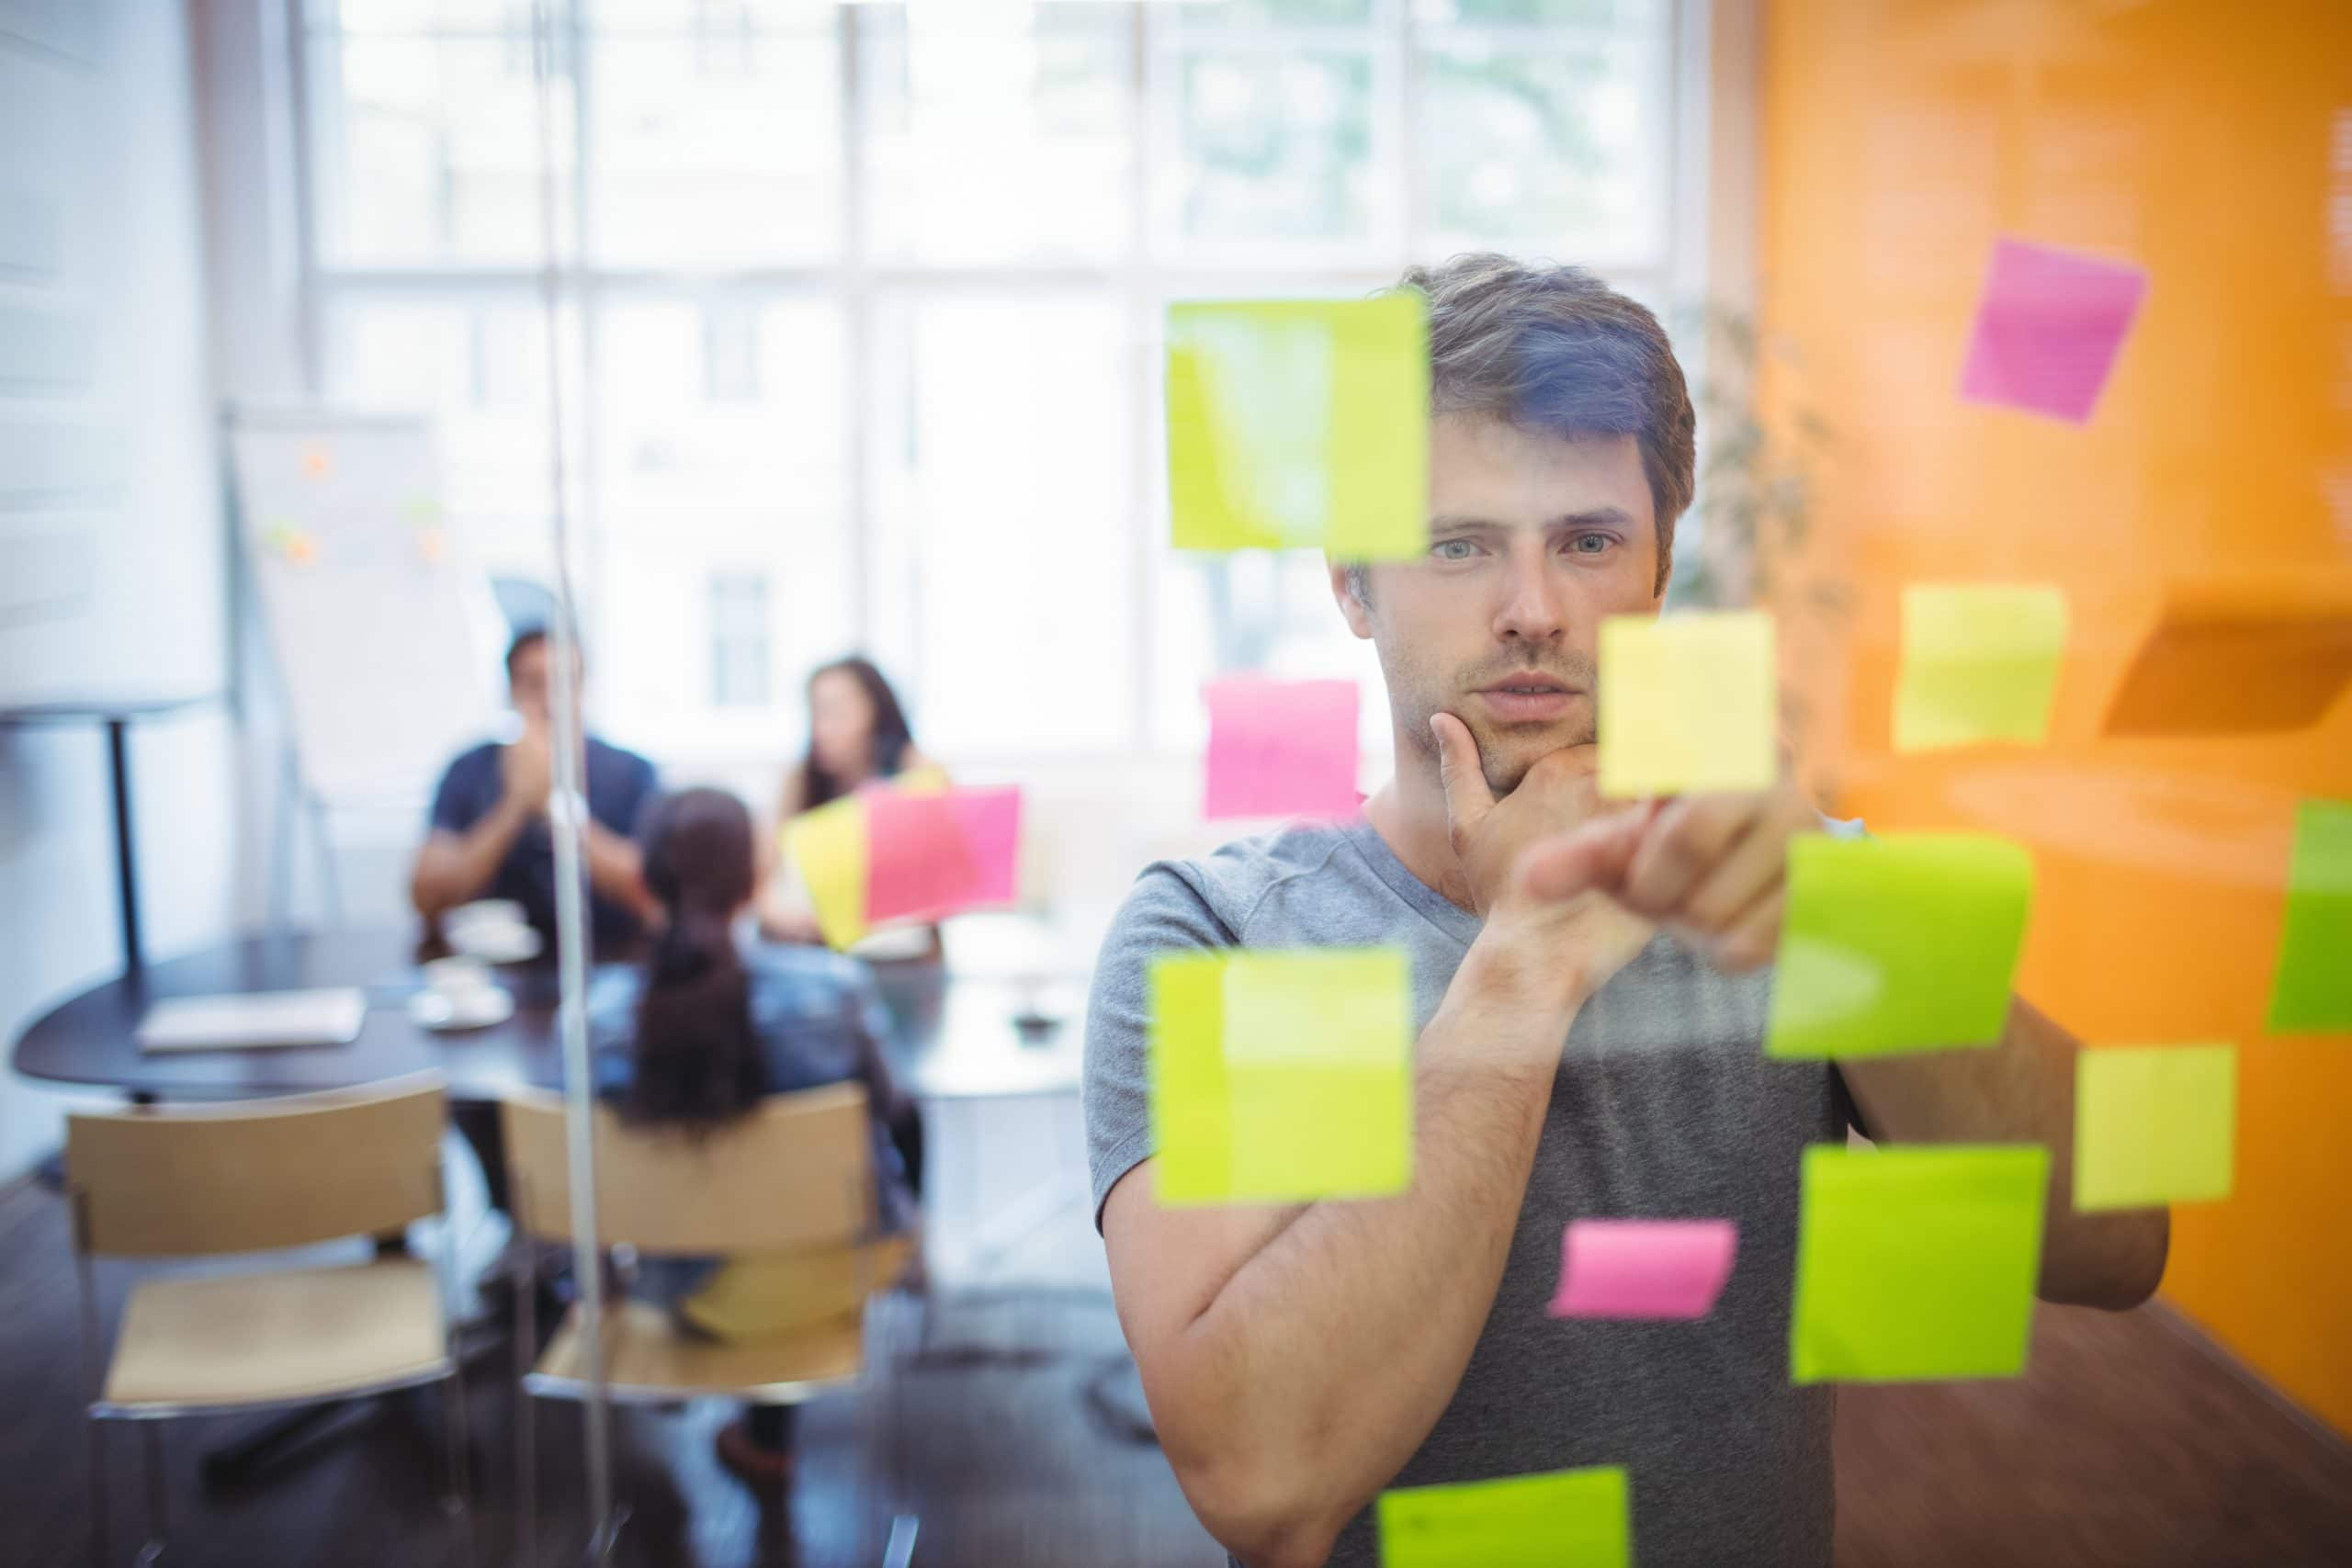 Close-up of male executive reading sticky notes in office